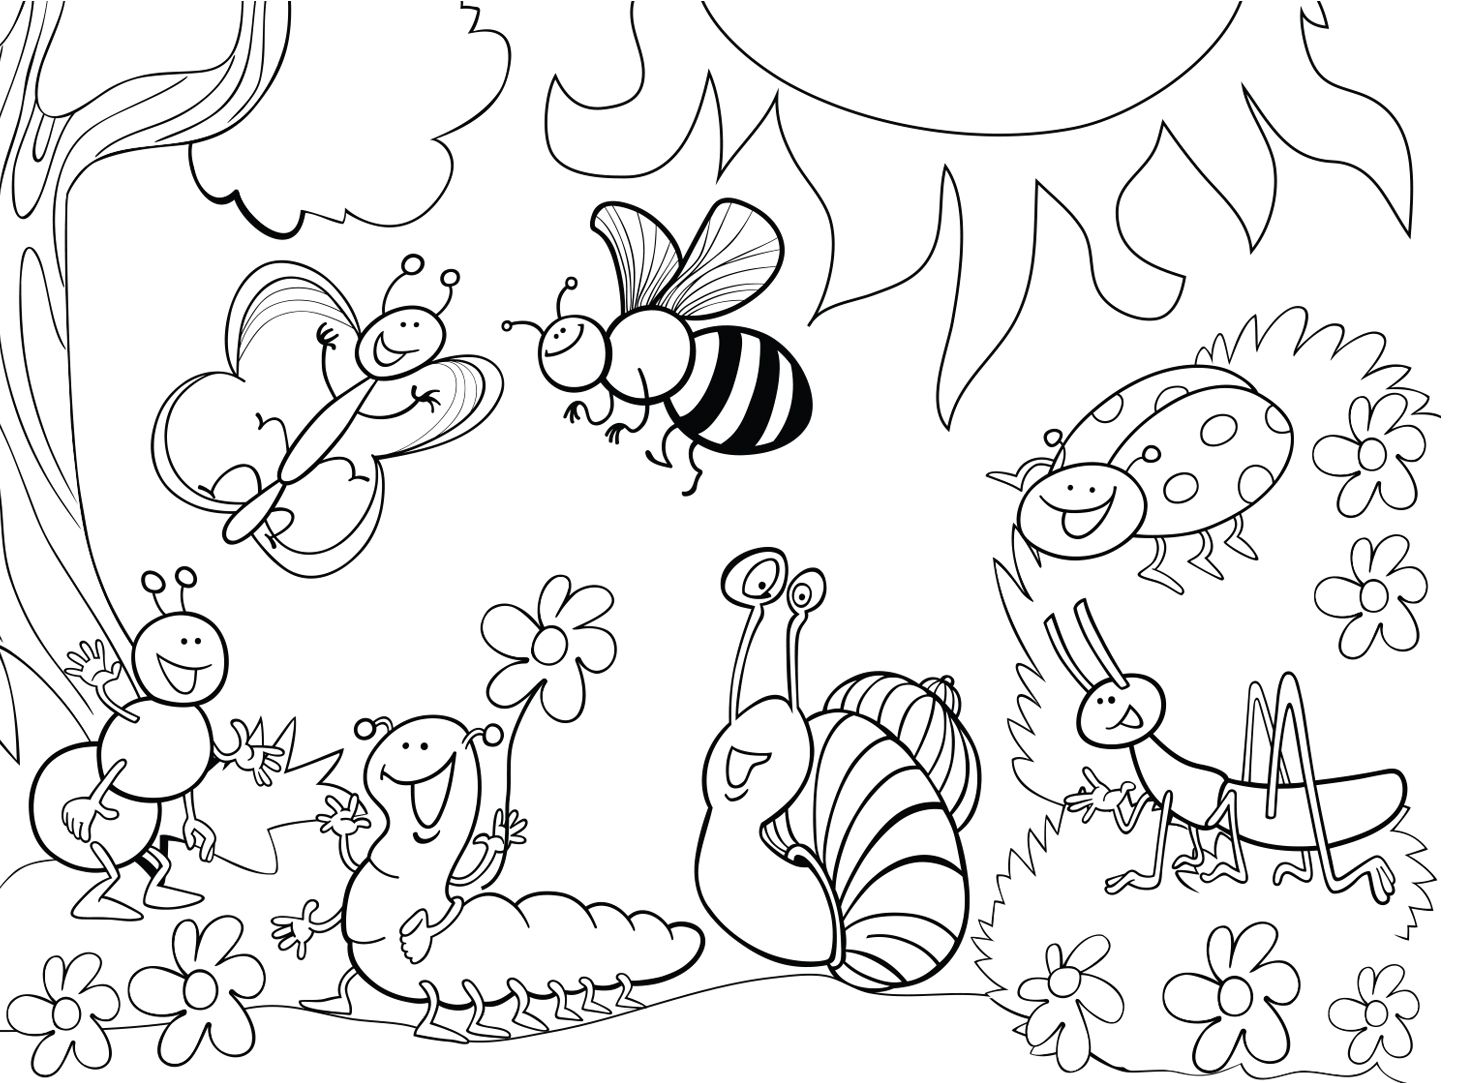 1114016 Garden Insect Coloring Page Jpg 1462 1083 Bug Coloring